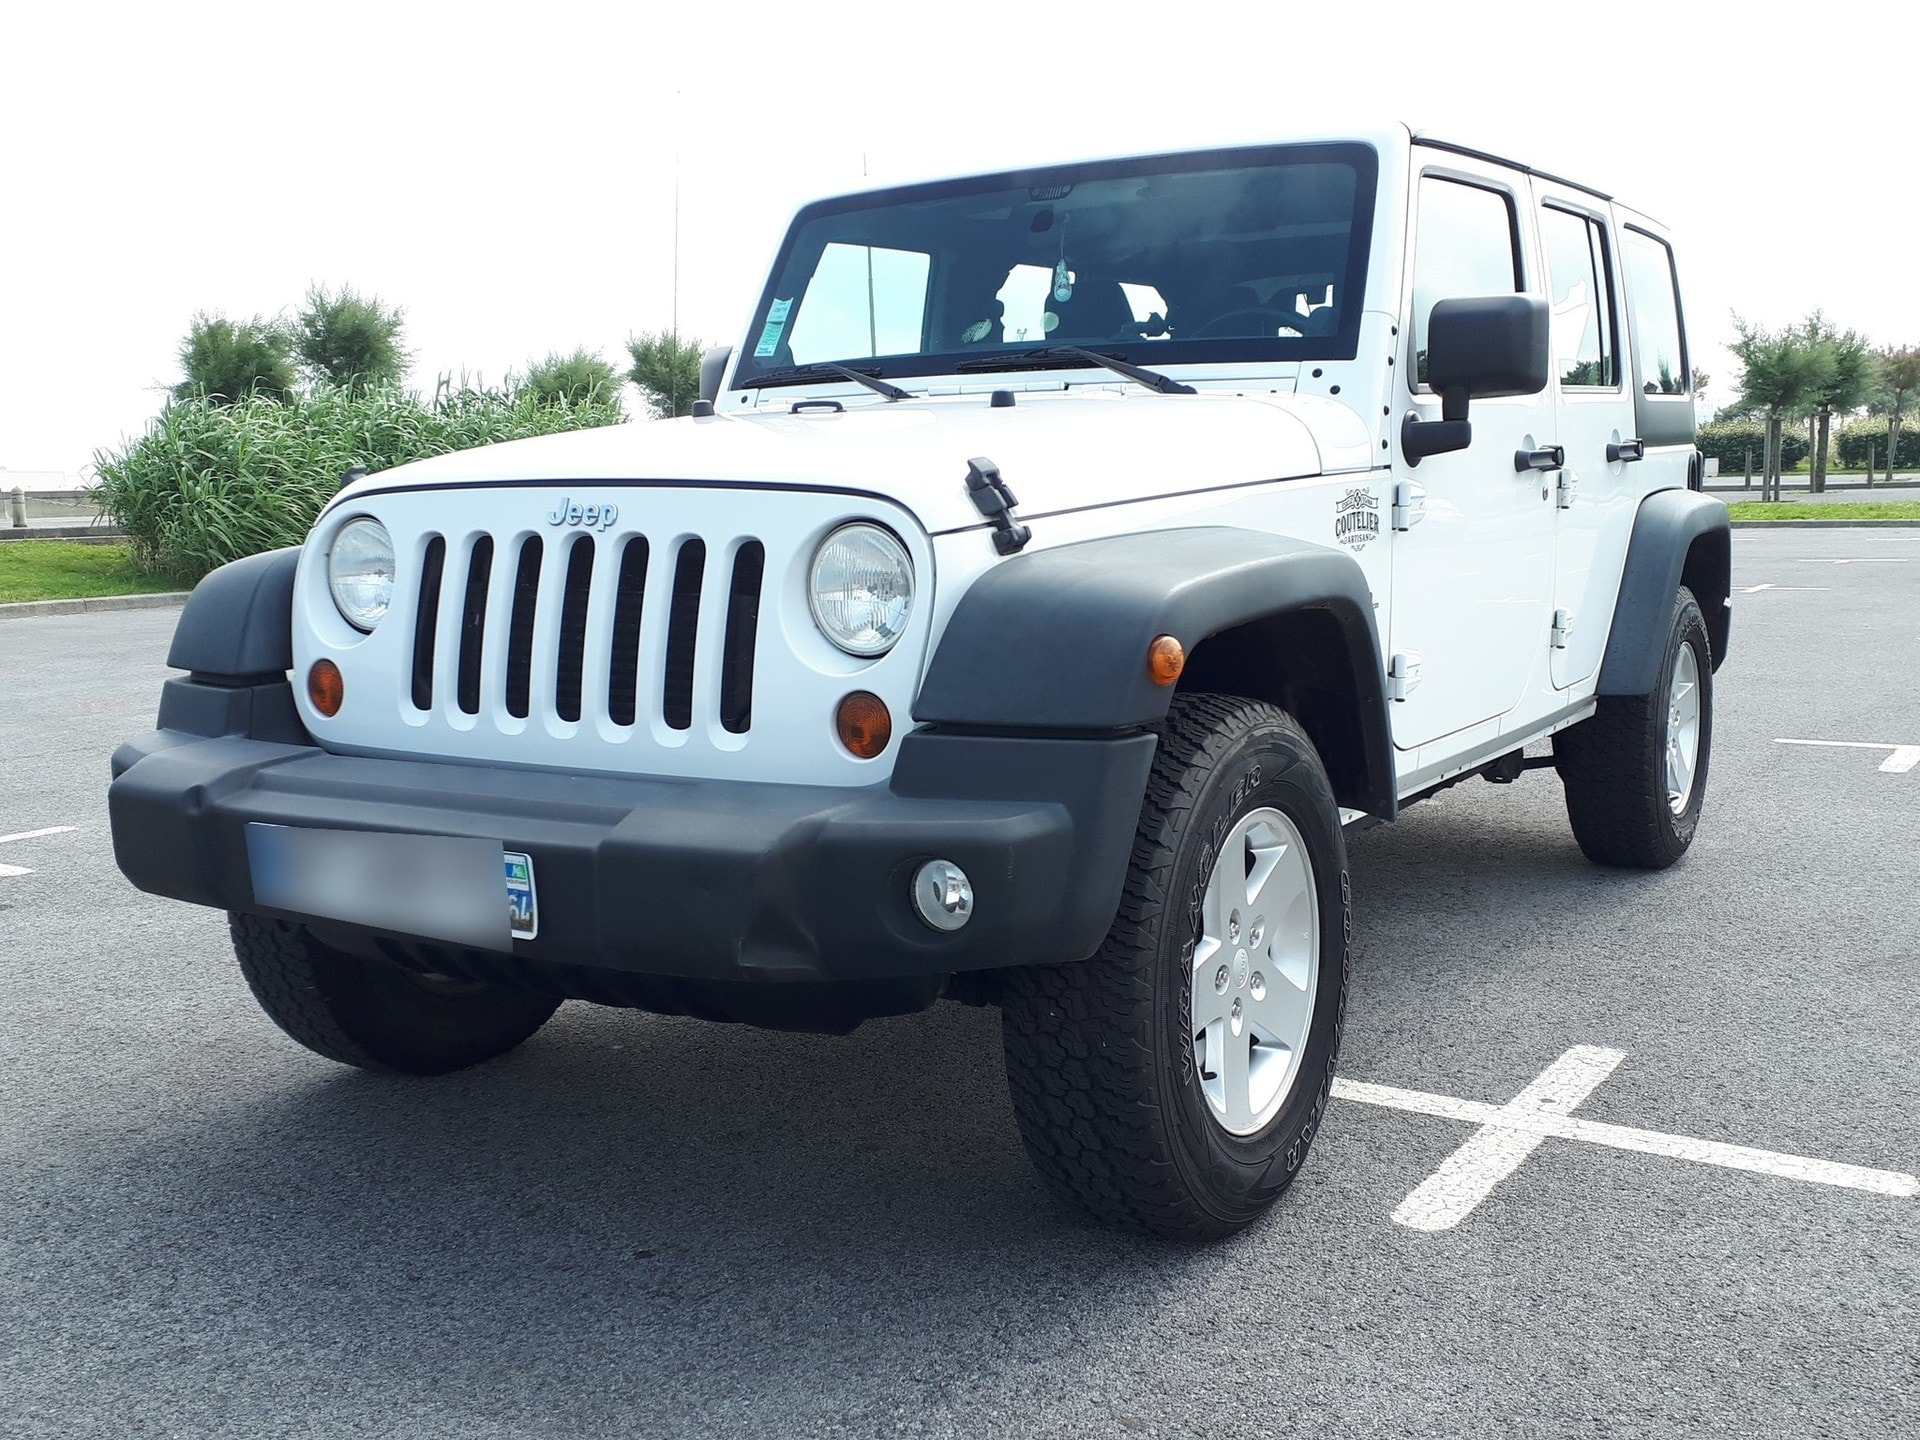 JEEP WRANGLER 2.8 CRD 200 UNLIMITED SPORT AWD - Carverntura